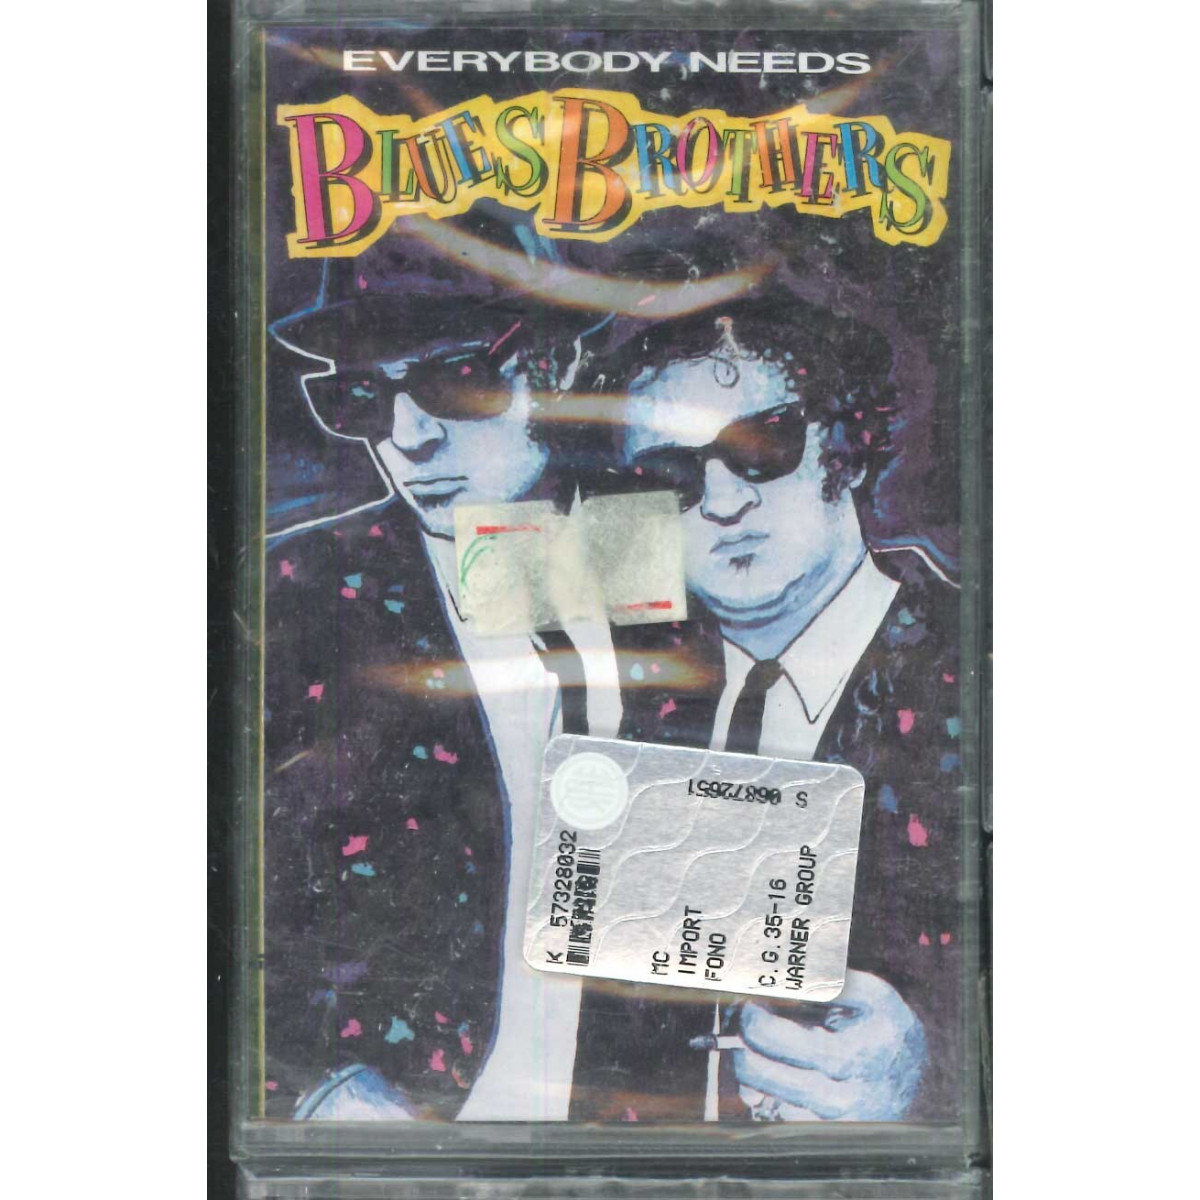 The Blues Brothers MC7 Everybody Needs / WEA 2292-41379-4 Sigillata